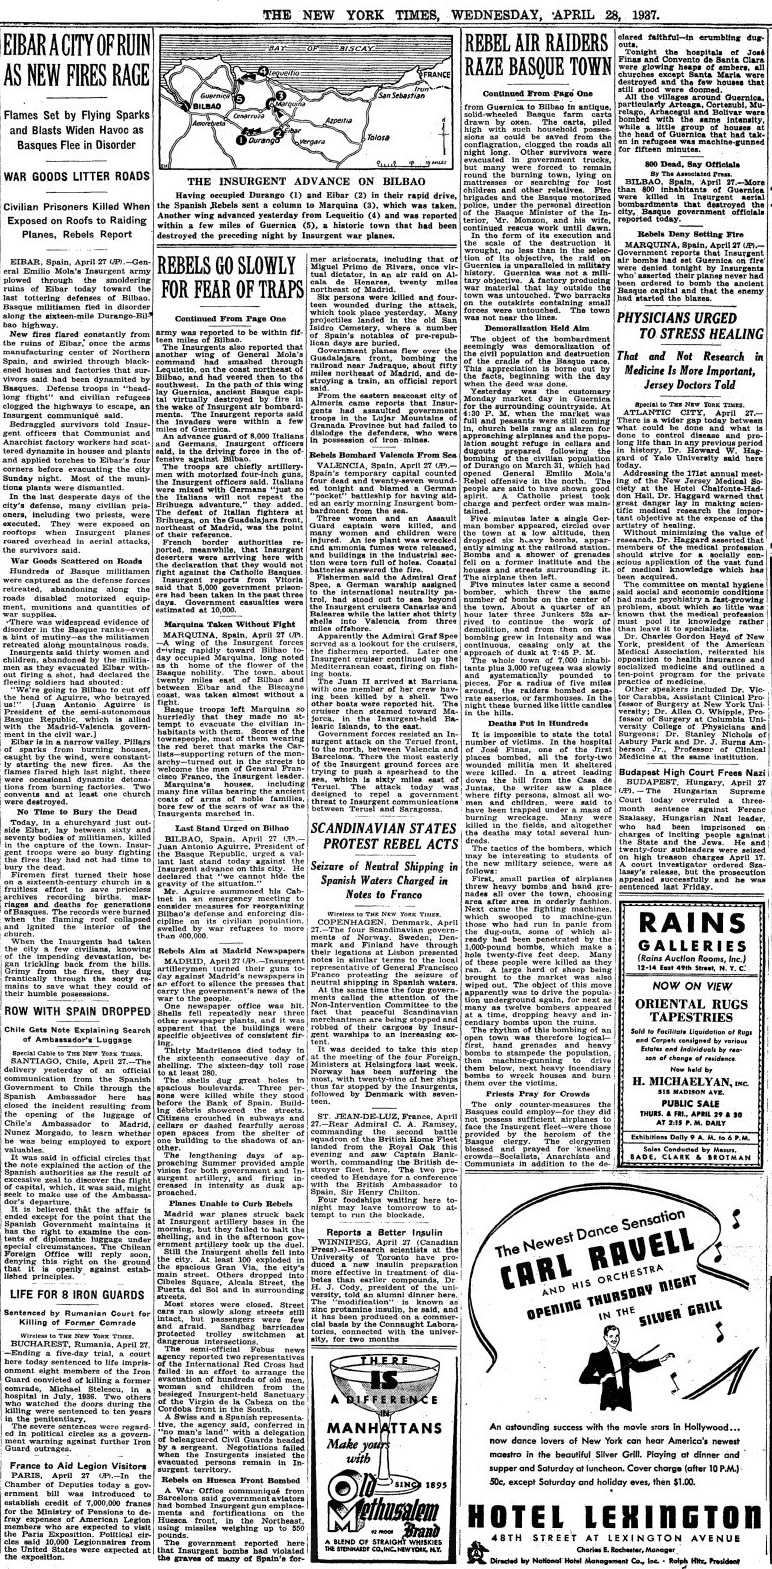 George L. Steer's chronicle in 'The New York Times', April 28, 1937.  On page 4.